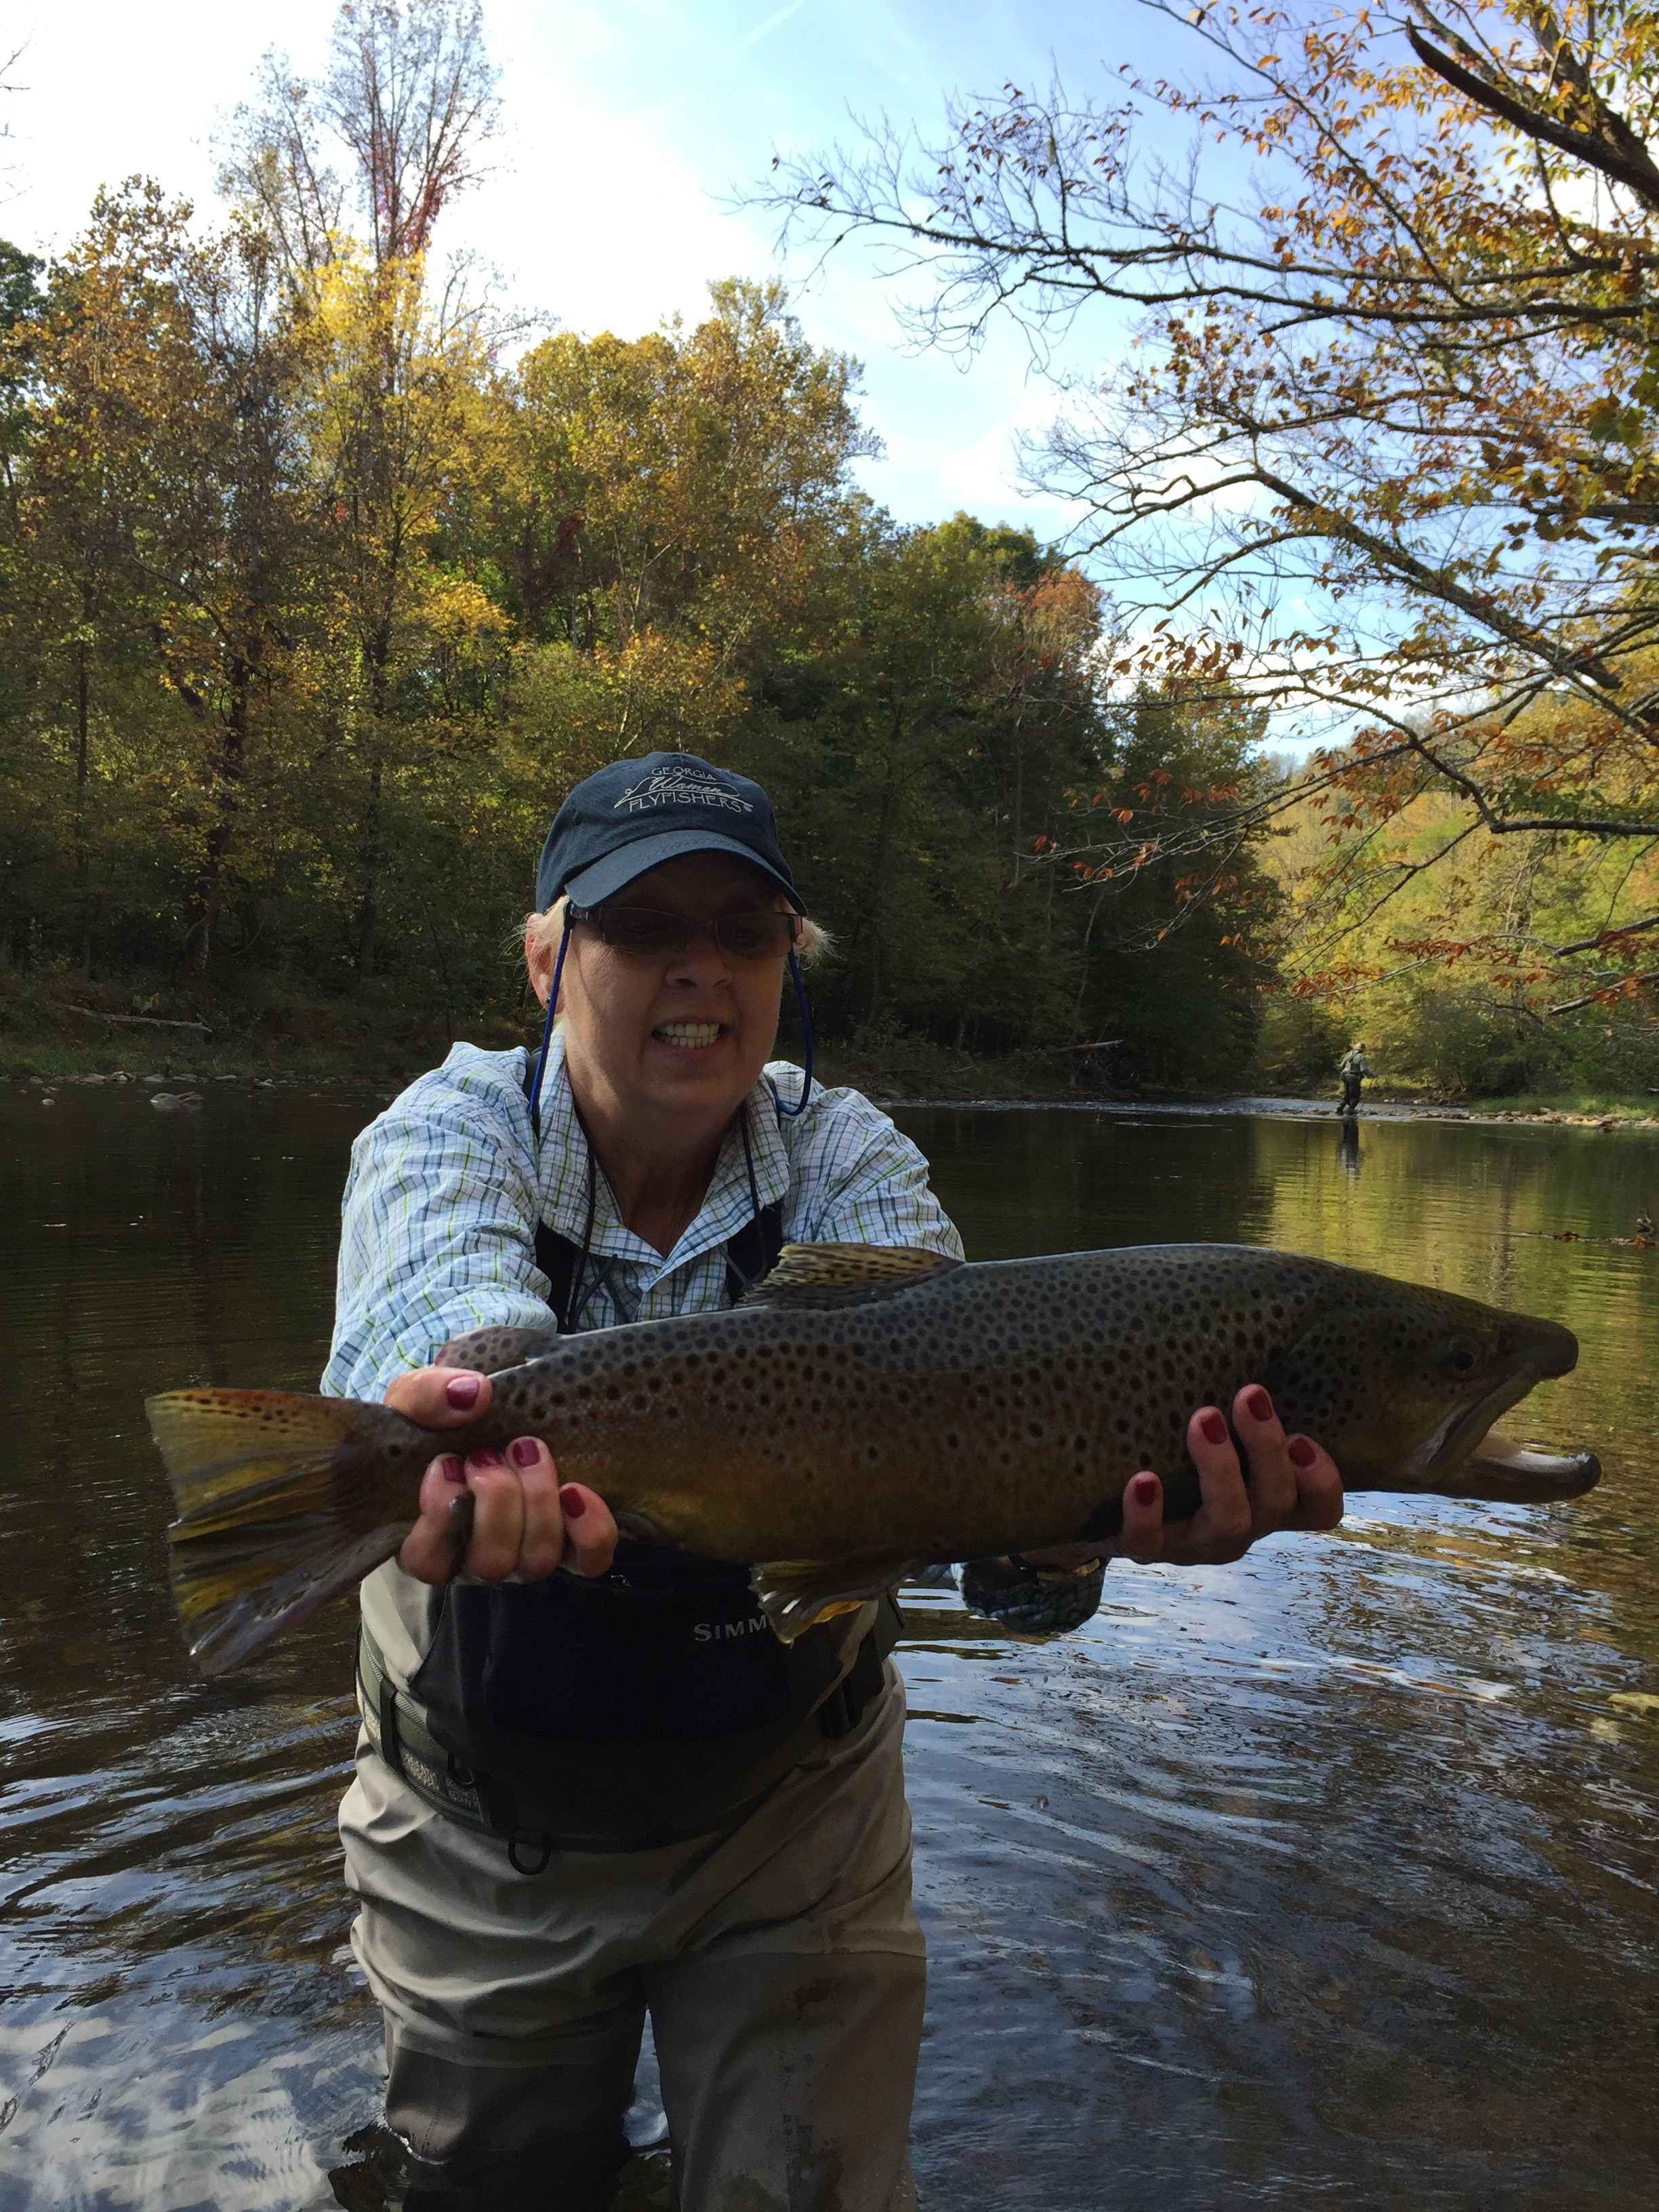 Hookers fly shop and guide service your smokies fly for Fly fishing cherokee nc